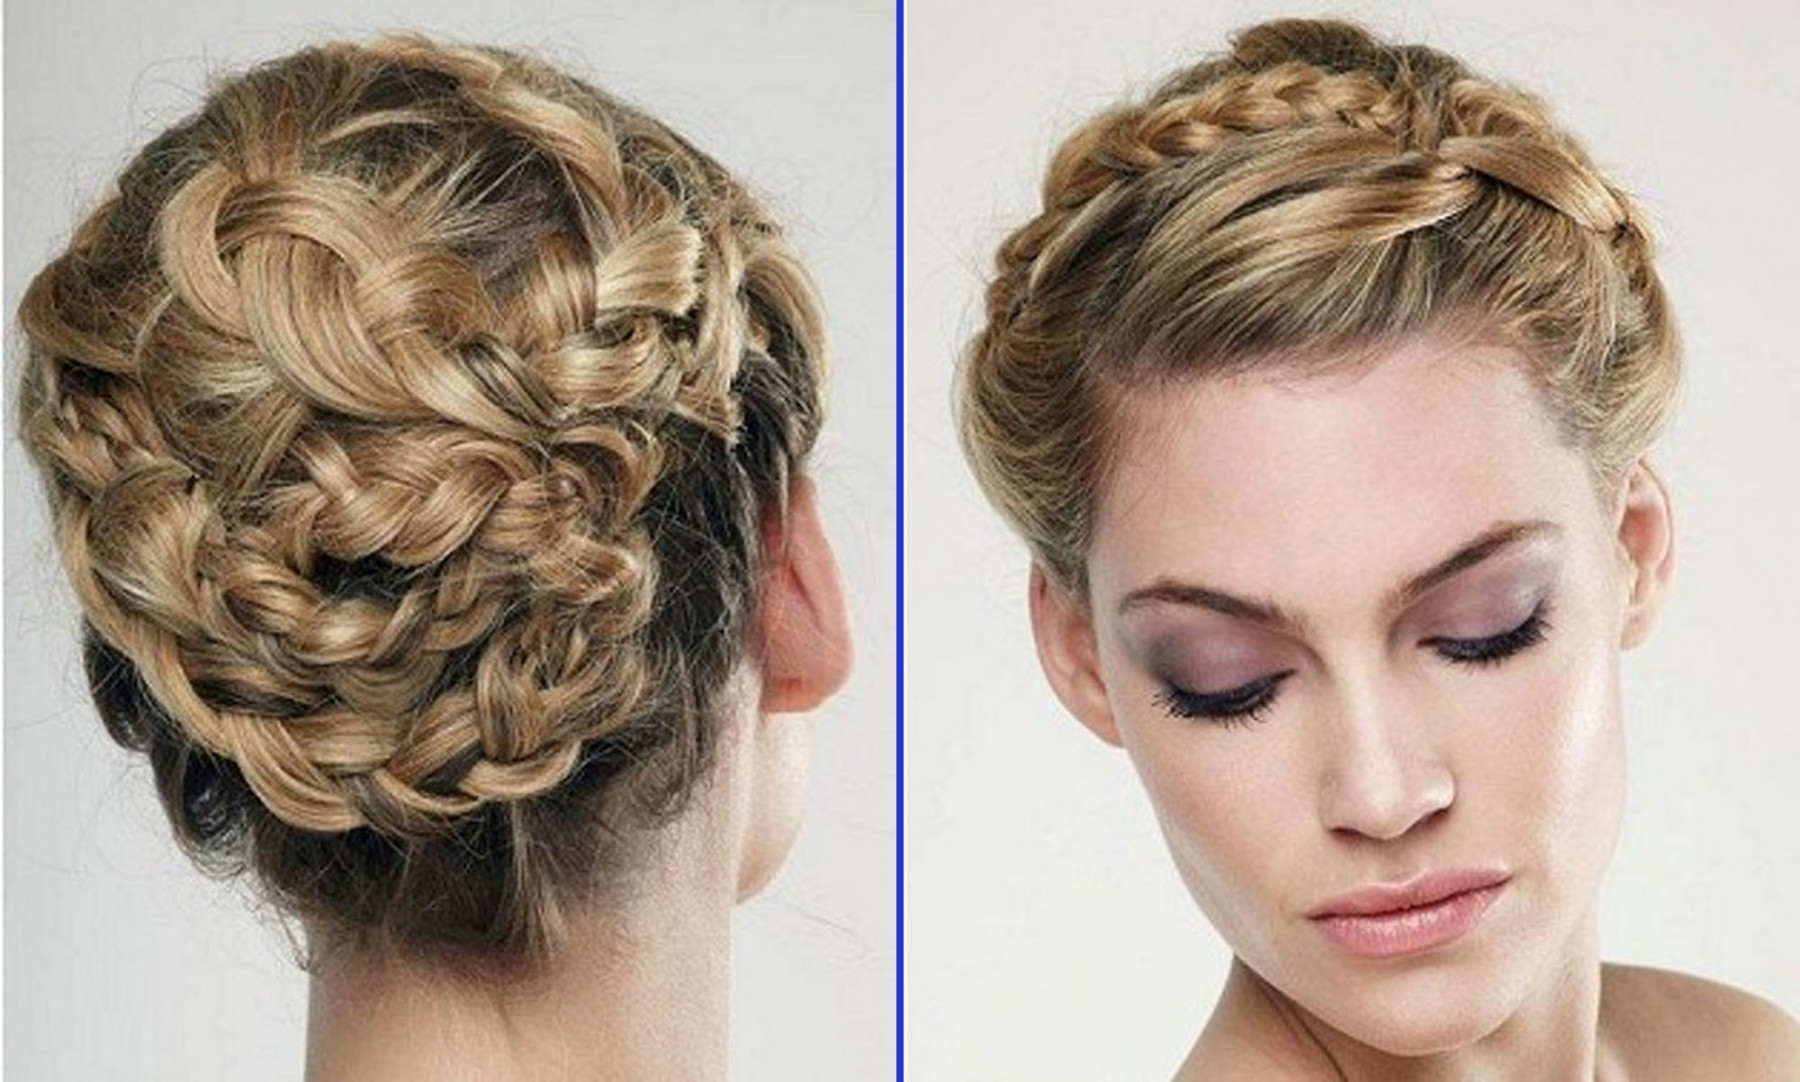 Braided Updo Hairstyles Wedding For Women Hairdresser | Medium With Women's Updo Hairstyles (View 4 of 15)